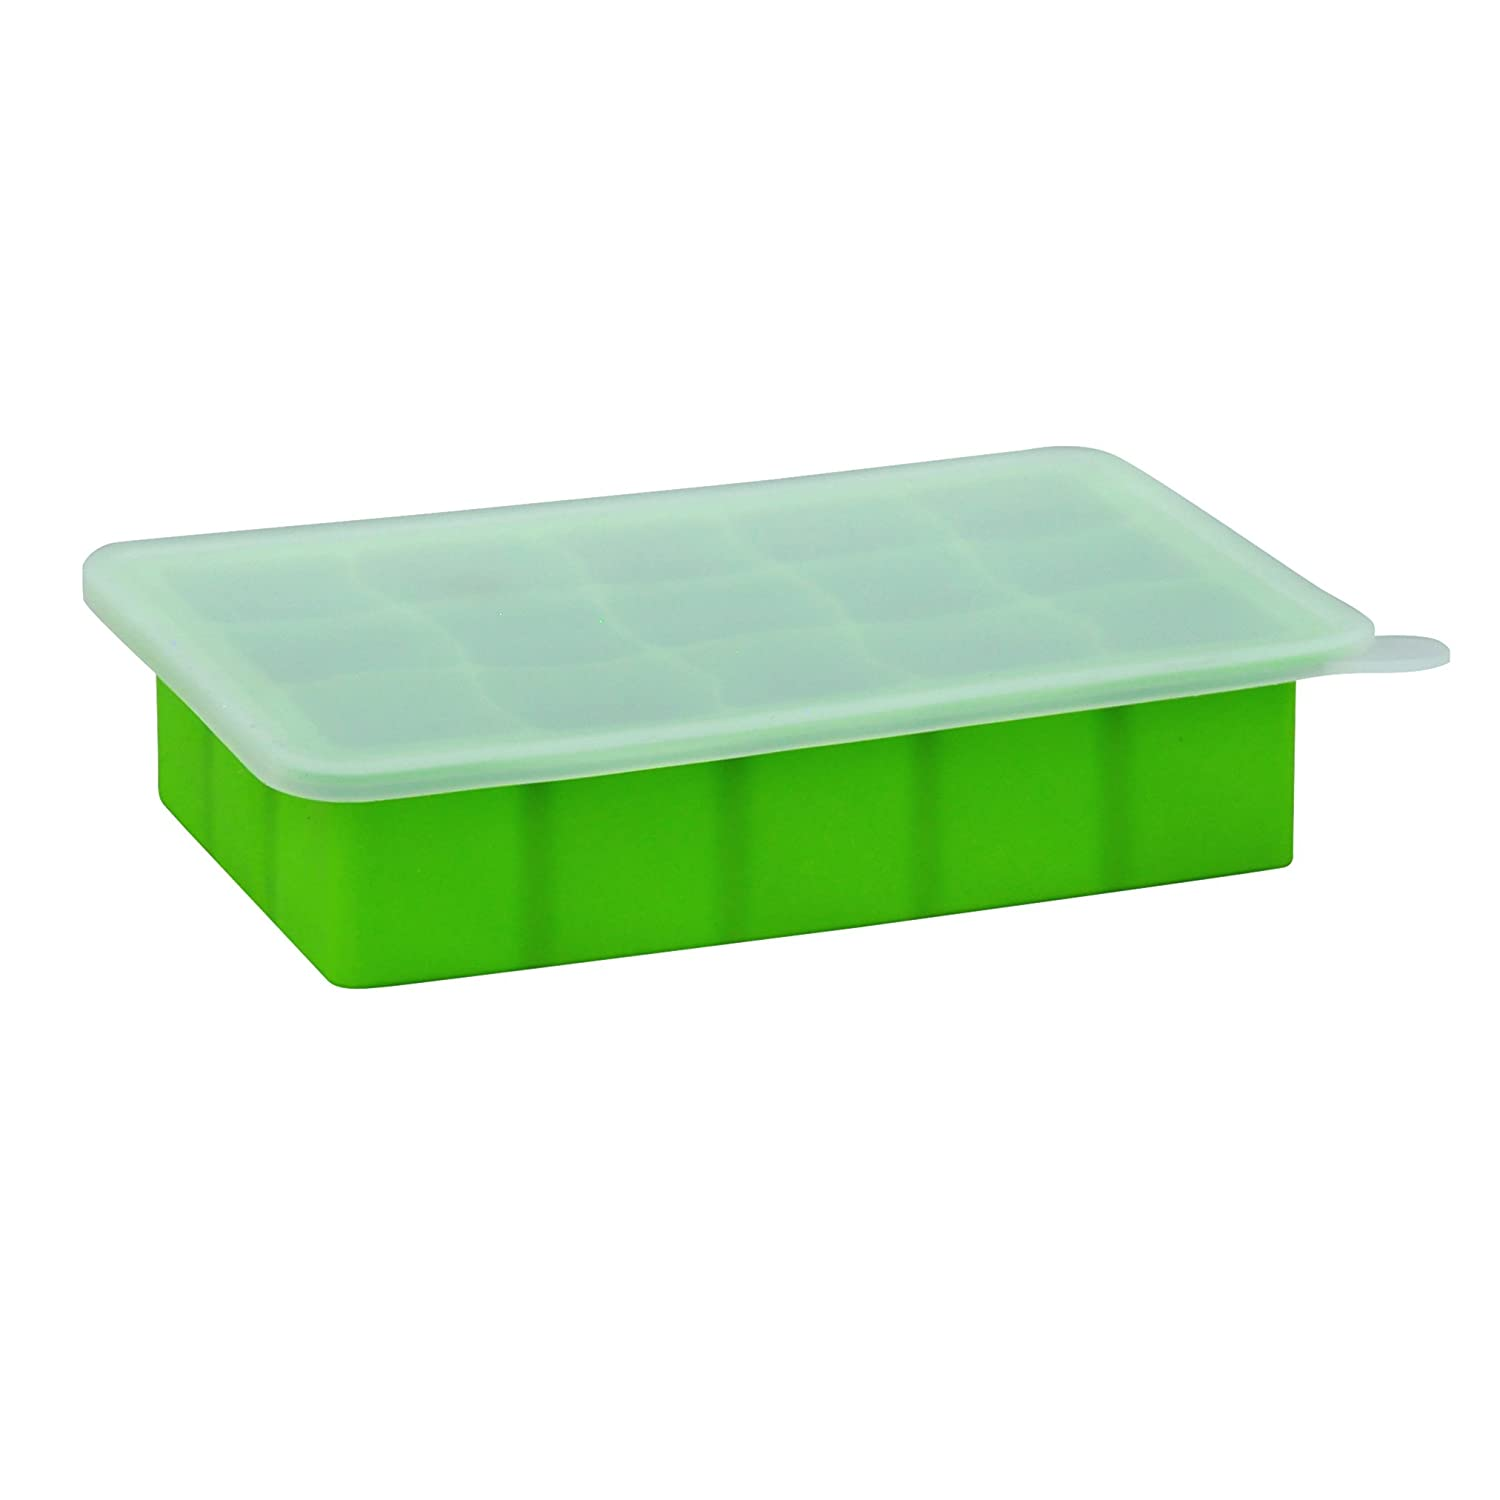 green sprouts Fresh Baby Food Freezer Tray| Perfectly portioned for baby's first feedings | Clear lid for covering food & stacking trays, Flexible for easy removal, Dishwasher safe